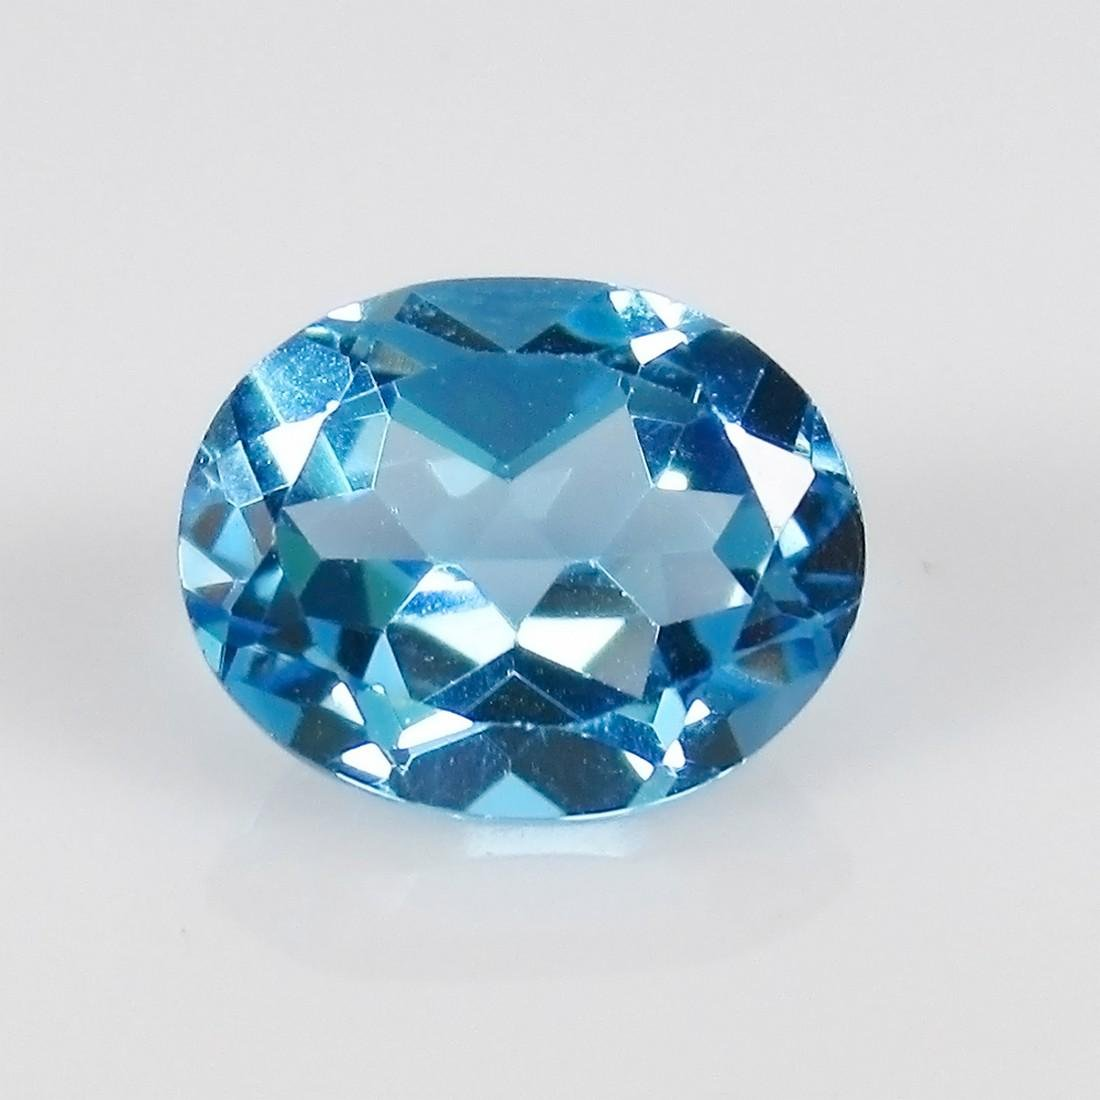 3.20 Ct Genuine Brazil Blue Topaz 10X8 mm Oval Cut